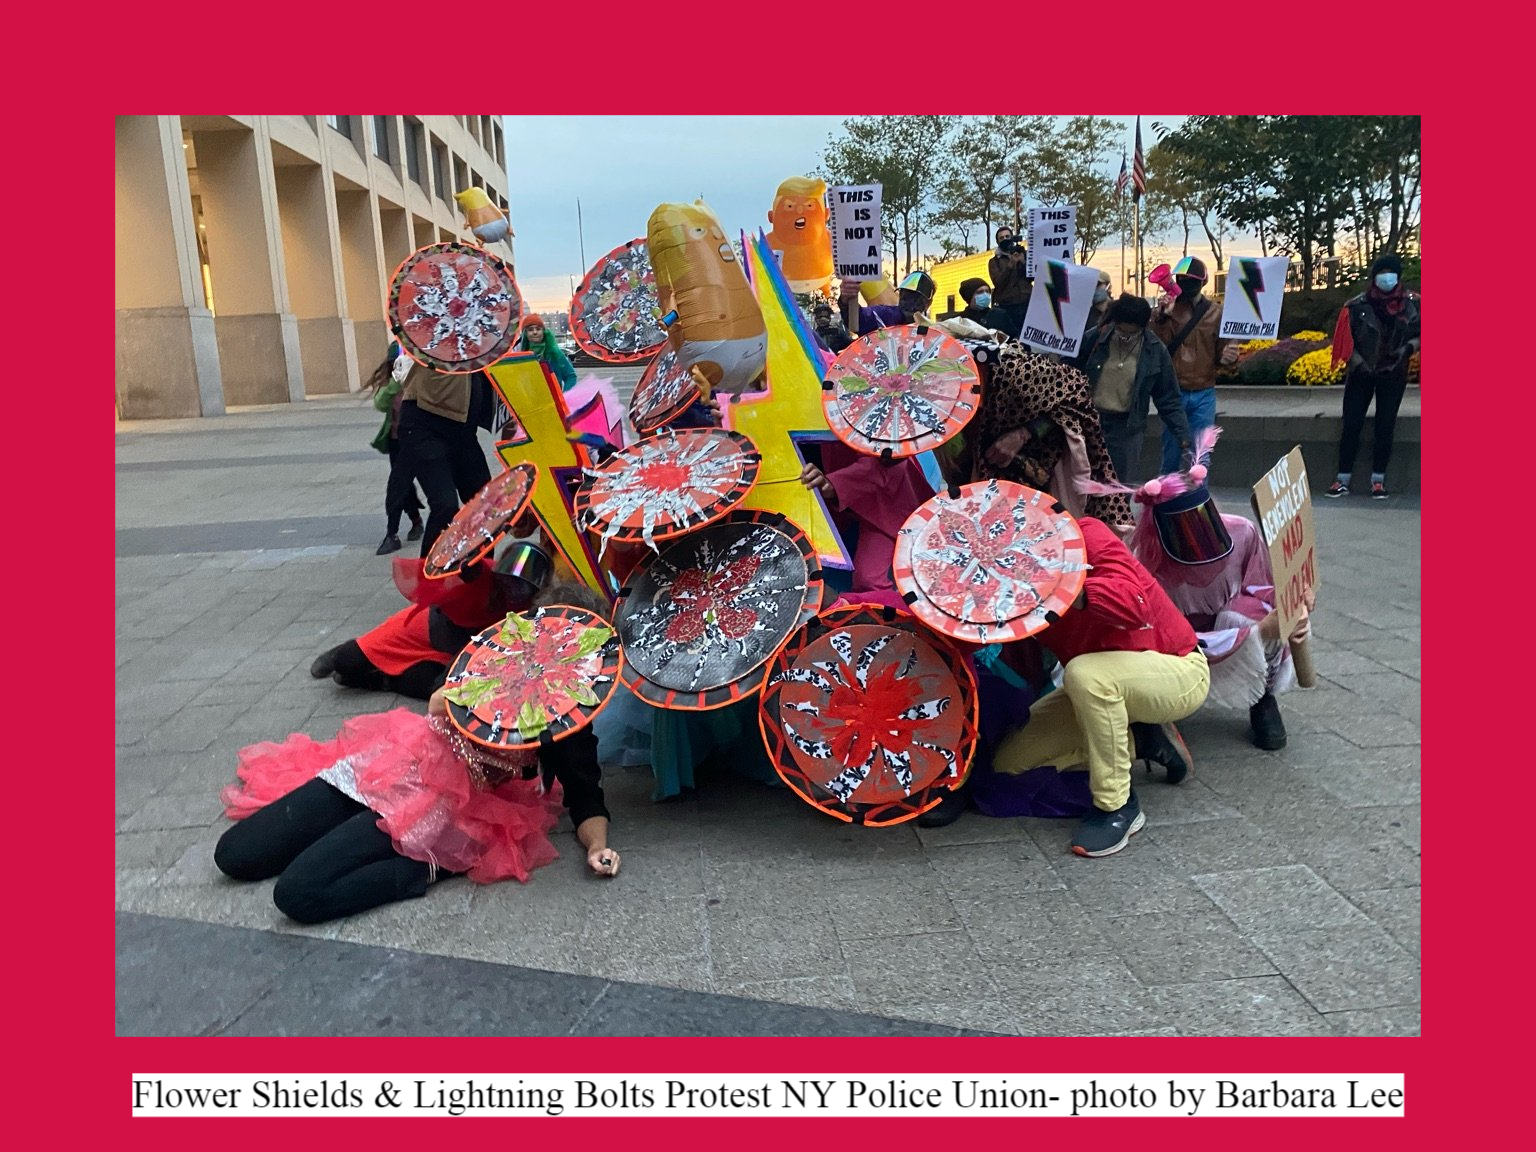 Flower Shields & Lightning Bolts Protest NY Police Union- photo by Barbara Lee